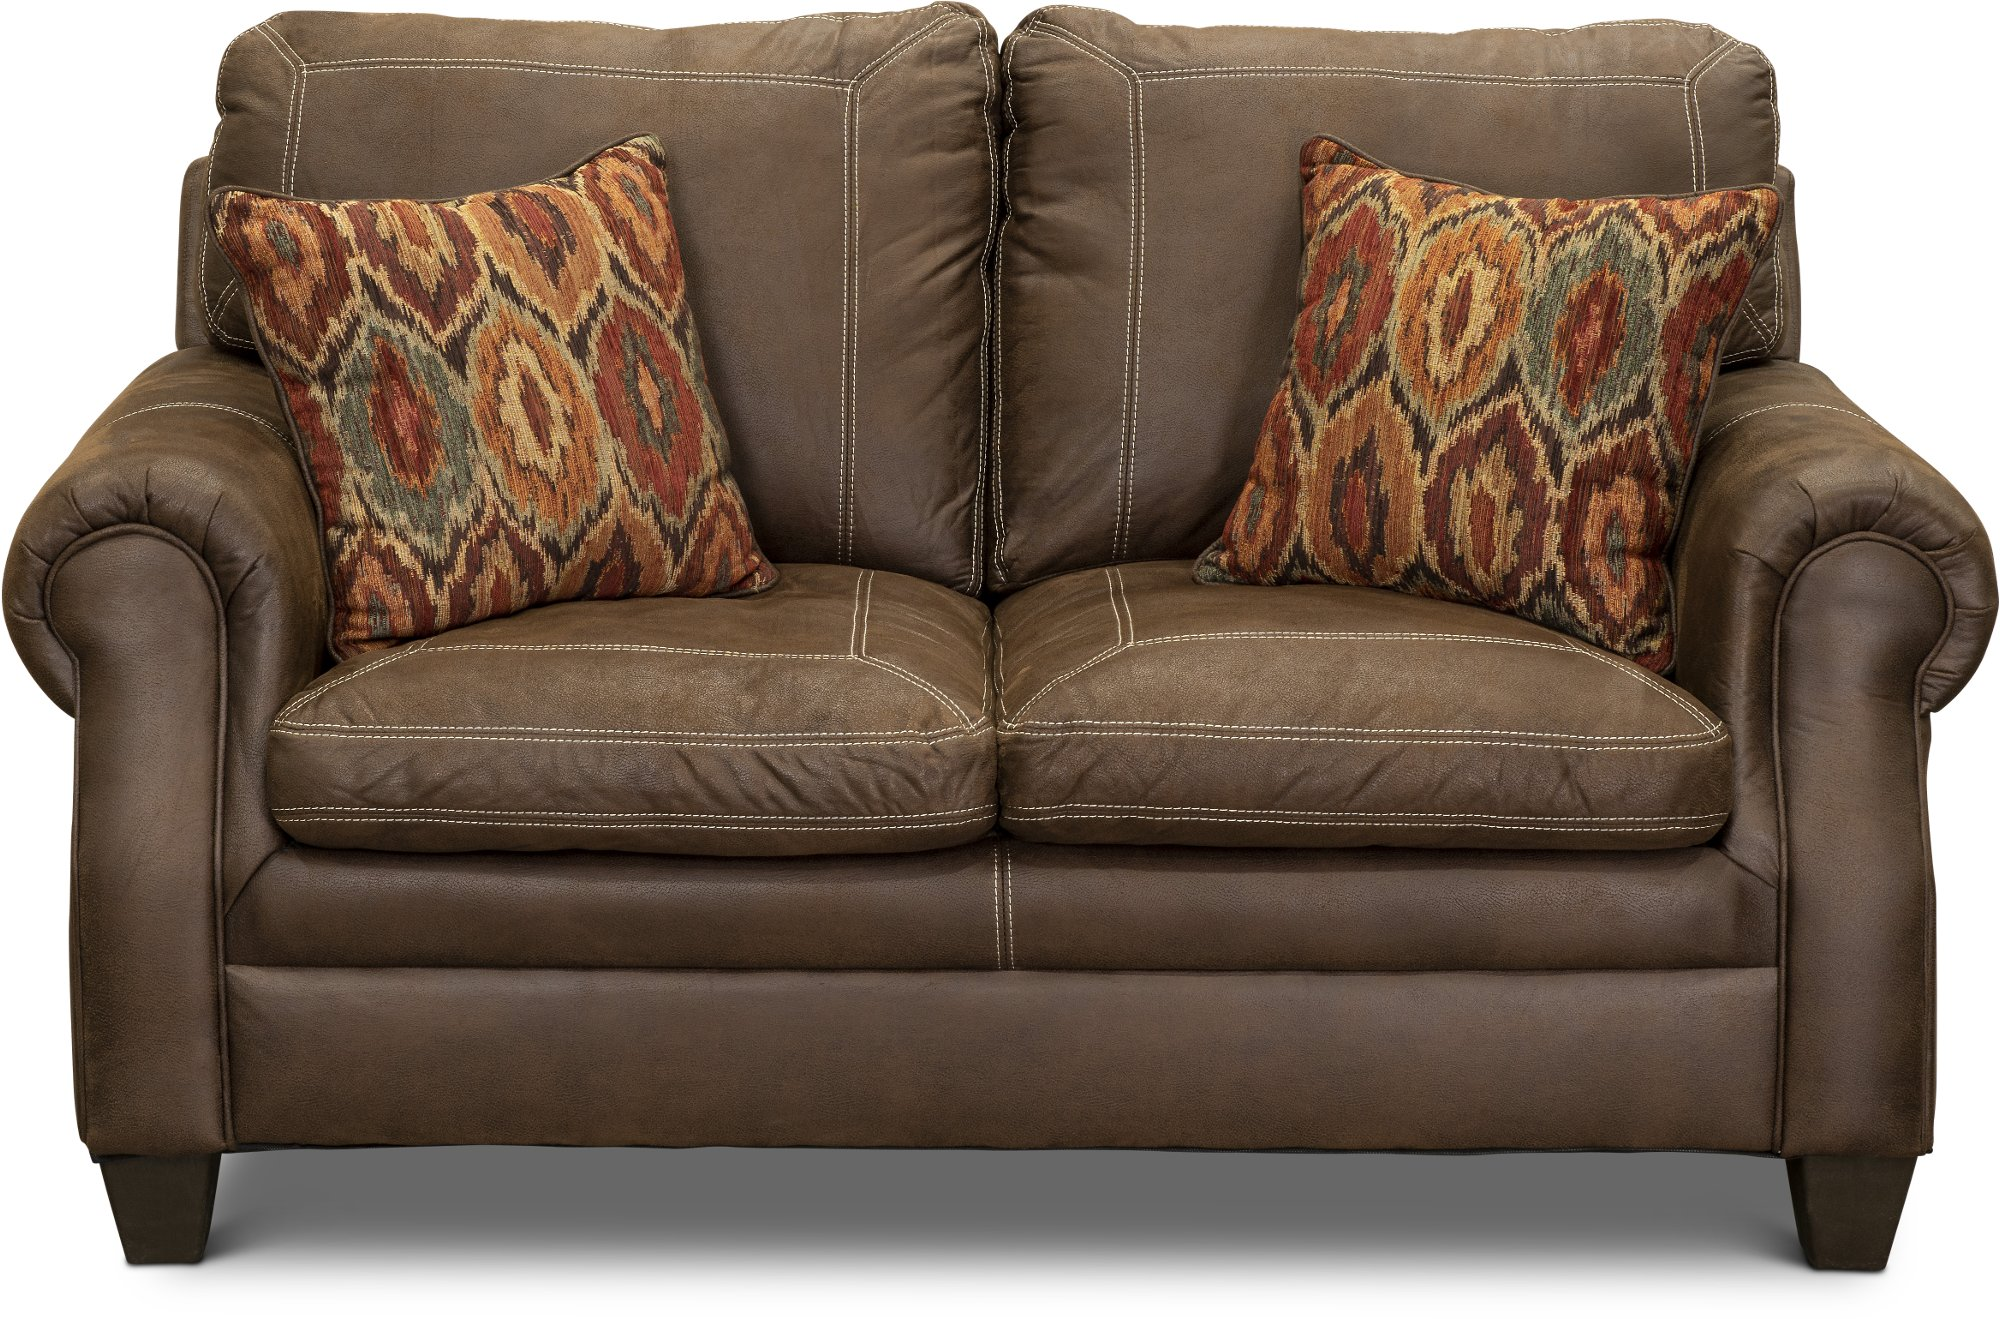 Classic traditional brown sofa loveseat set shiloh for Classic traditional furniture